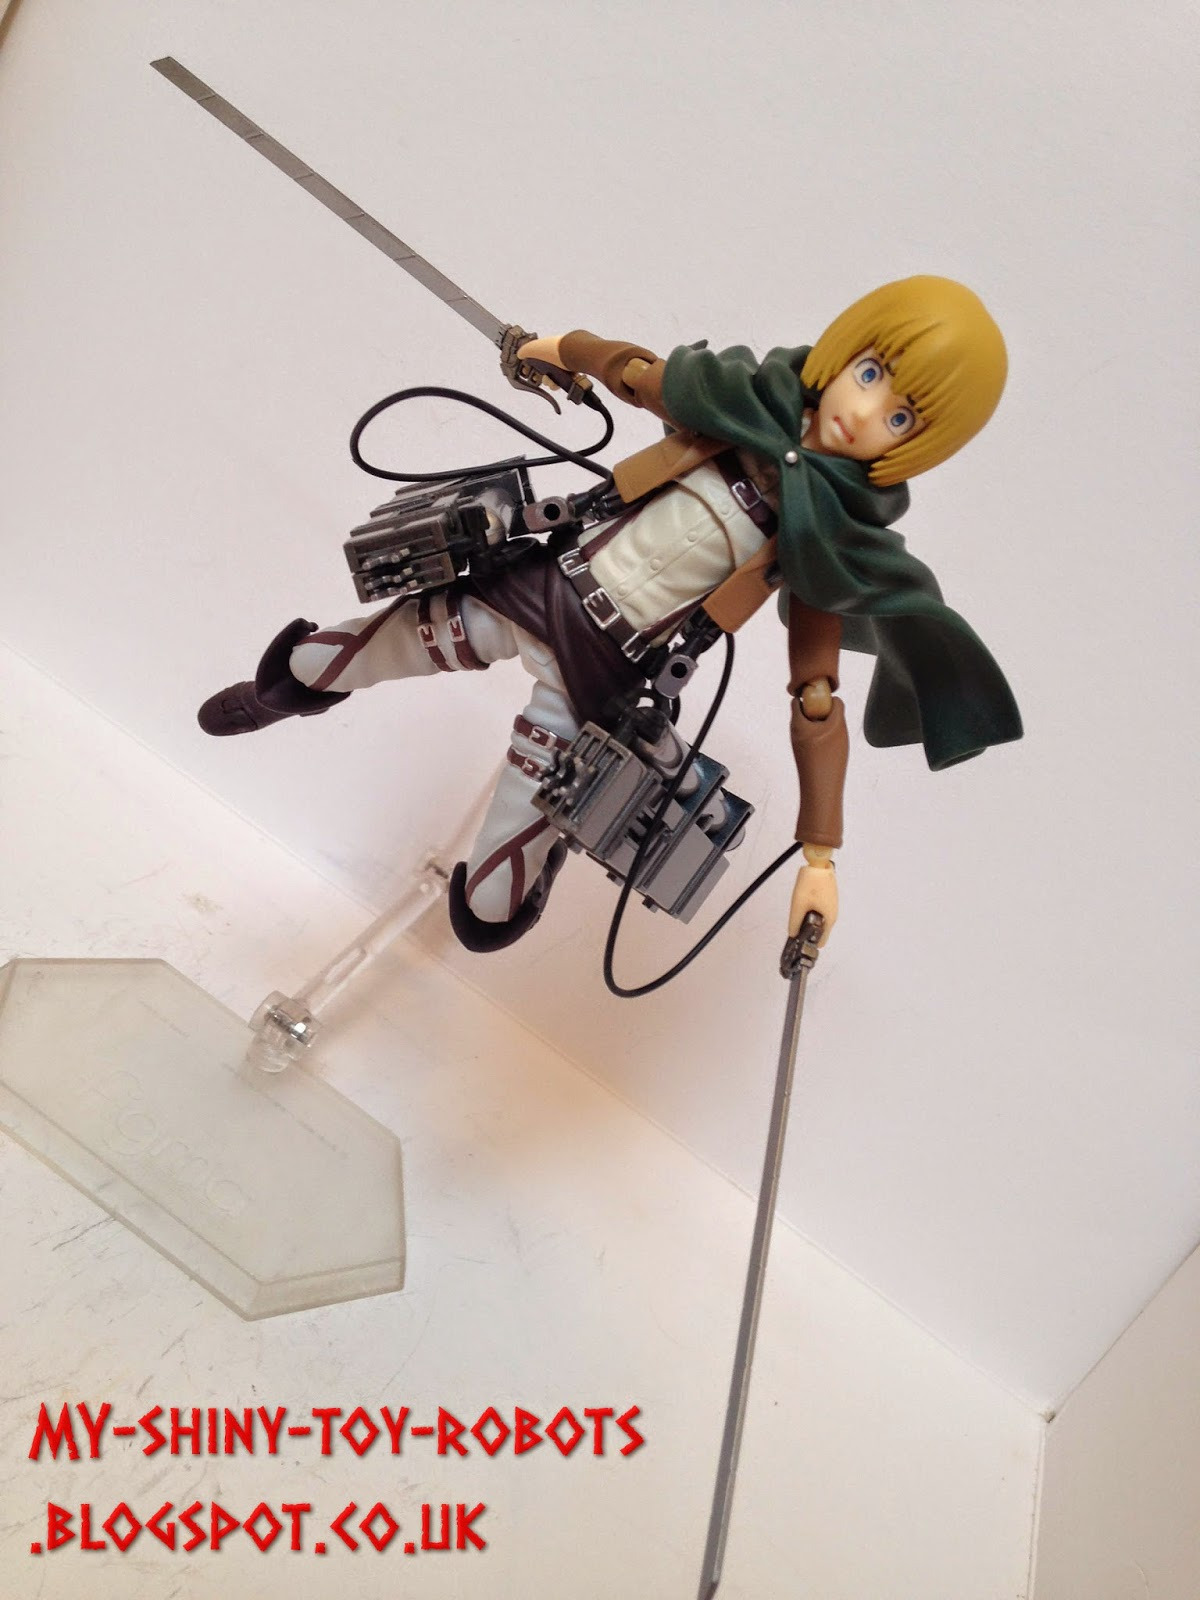 Good ol' Figma stands